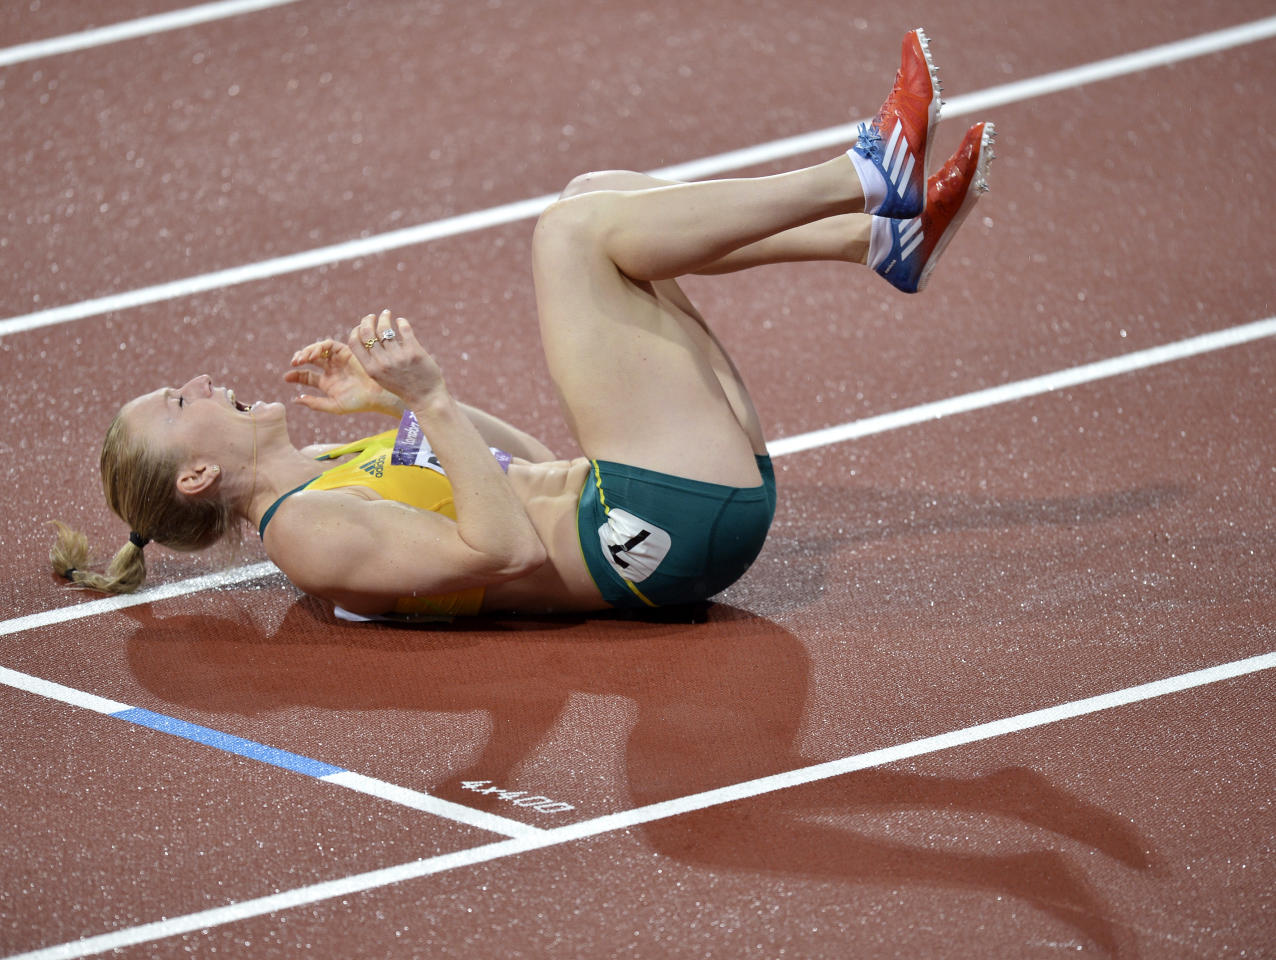 Australia's Sally Pearson celebrates after winning the women's 100-meter hurdles final during the athletics in the Olympic Stadium at the 2012 Summer Olympics, London, Tuesday, Aug. 7, 2012. (AP Photo/Martin Meissner)